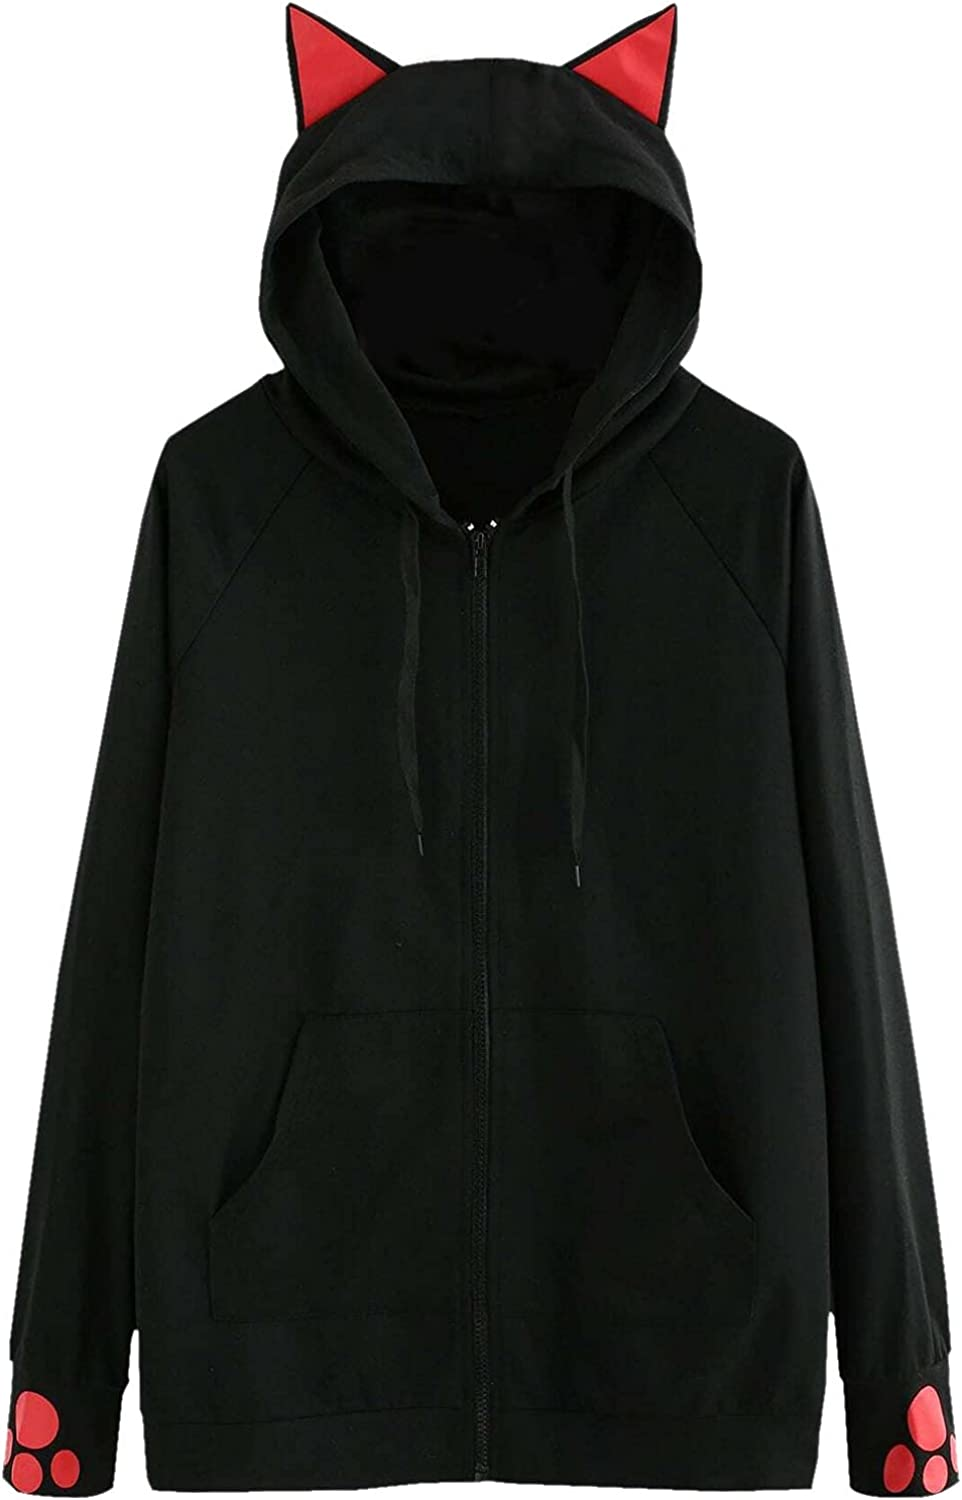 HONGJ Cat Ear Hoodies for Womens, Fall Cute Cat Paw Zipper Fashion Drawstring Pullover Hooded Sweatshirts with Pockets On Clea-rance Under 10 Dollars Sexy Fit Plus Size Elastic Stretchy Petite Wrap